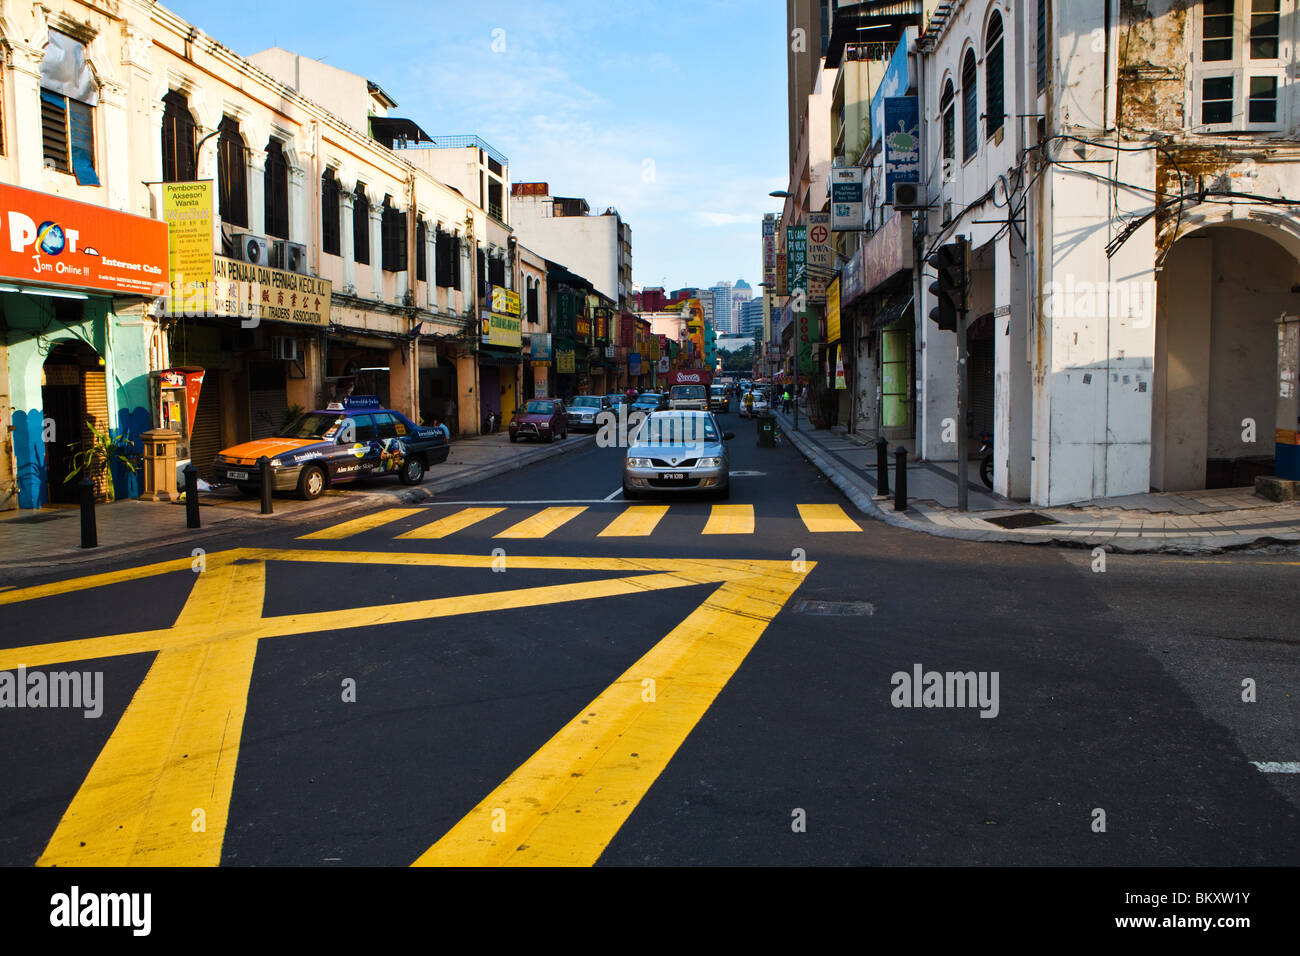 Old shophouses in Chinatown - Stock Image